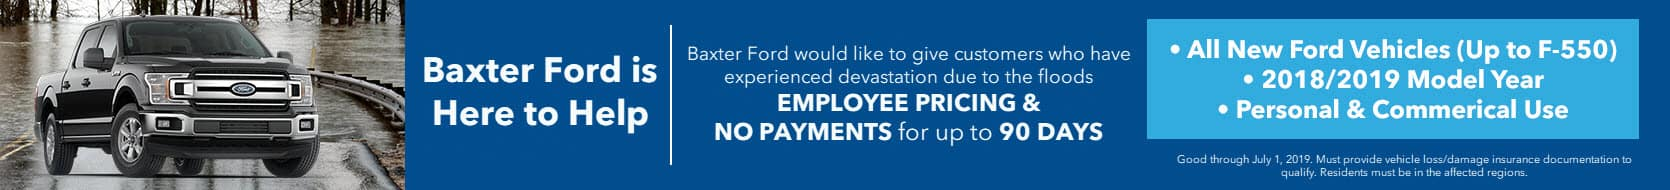 Baxter Ford Flood Relief Offer